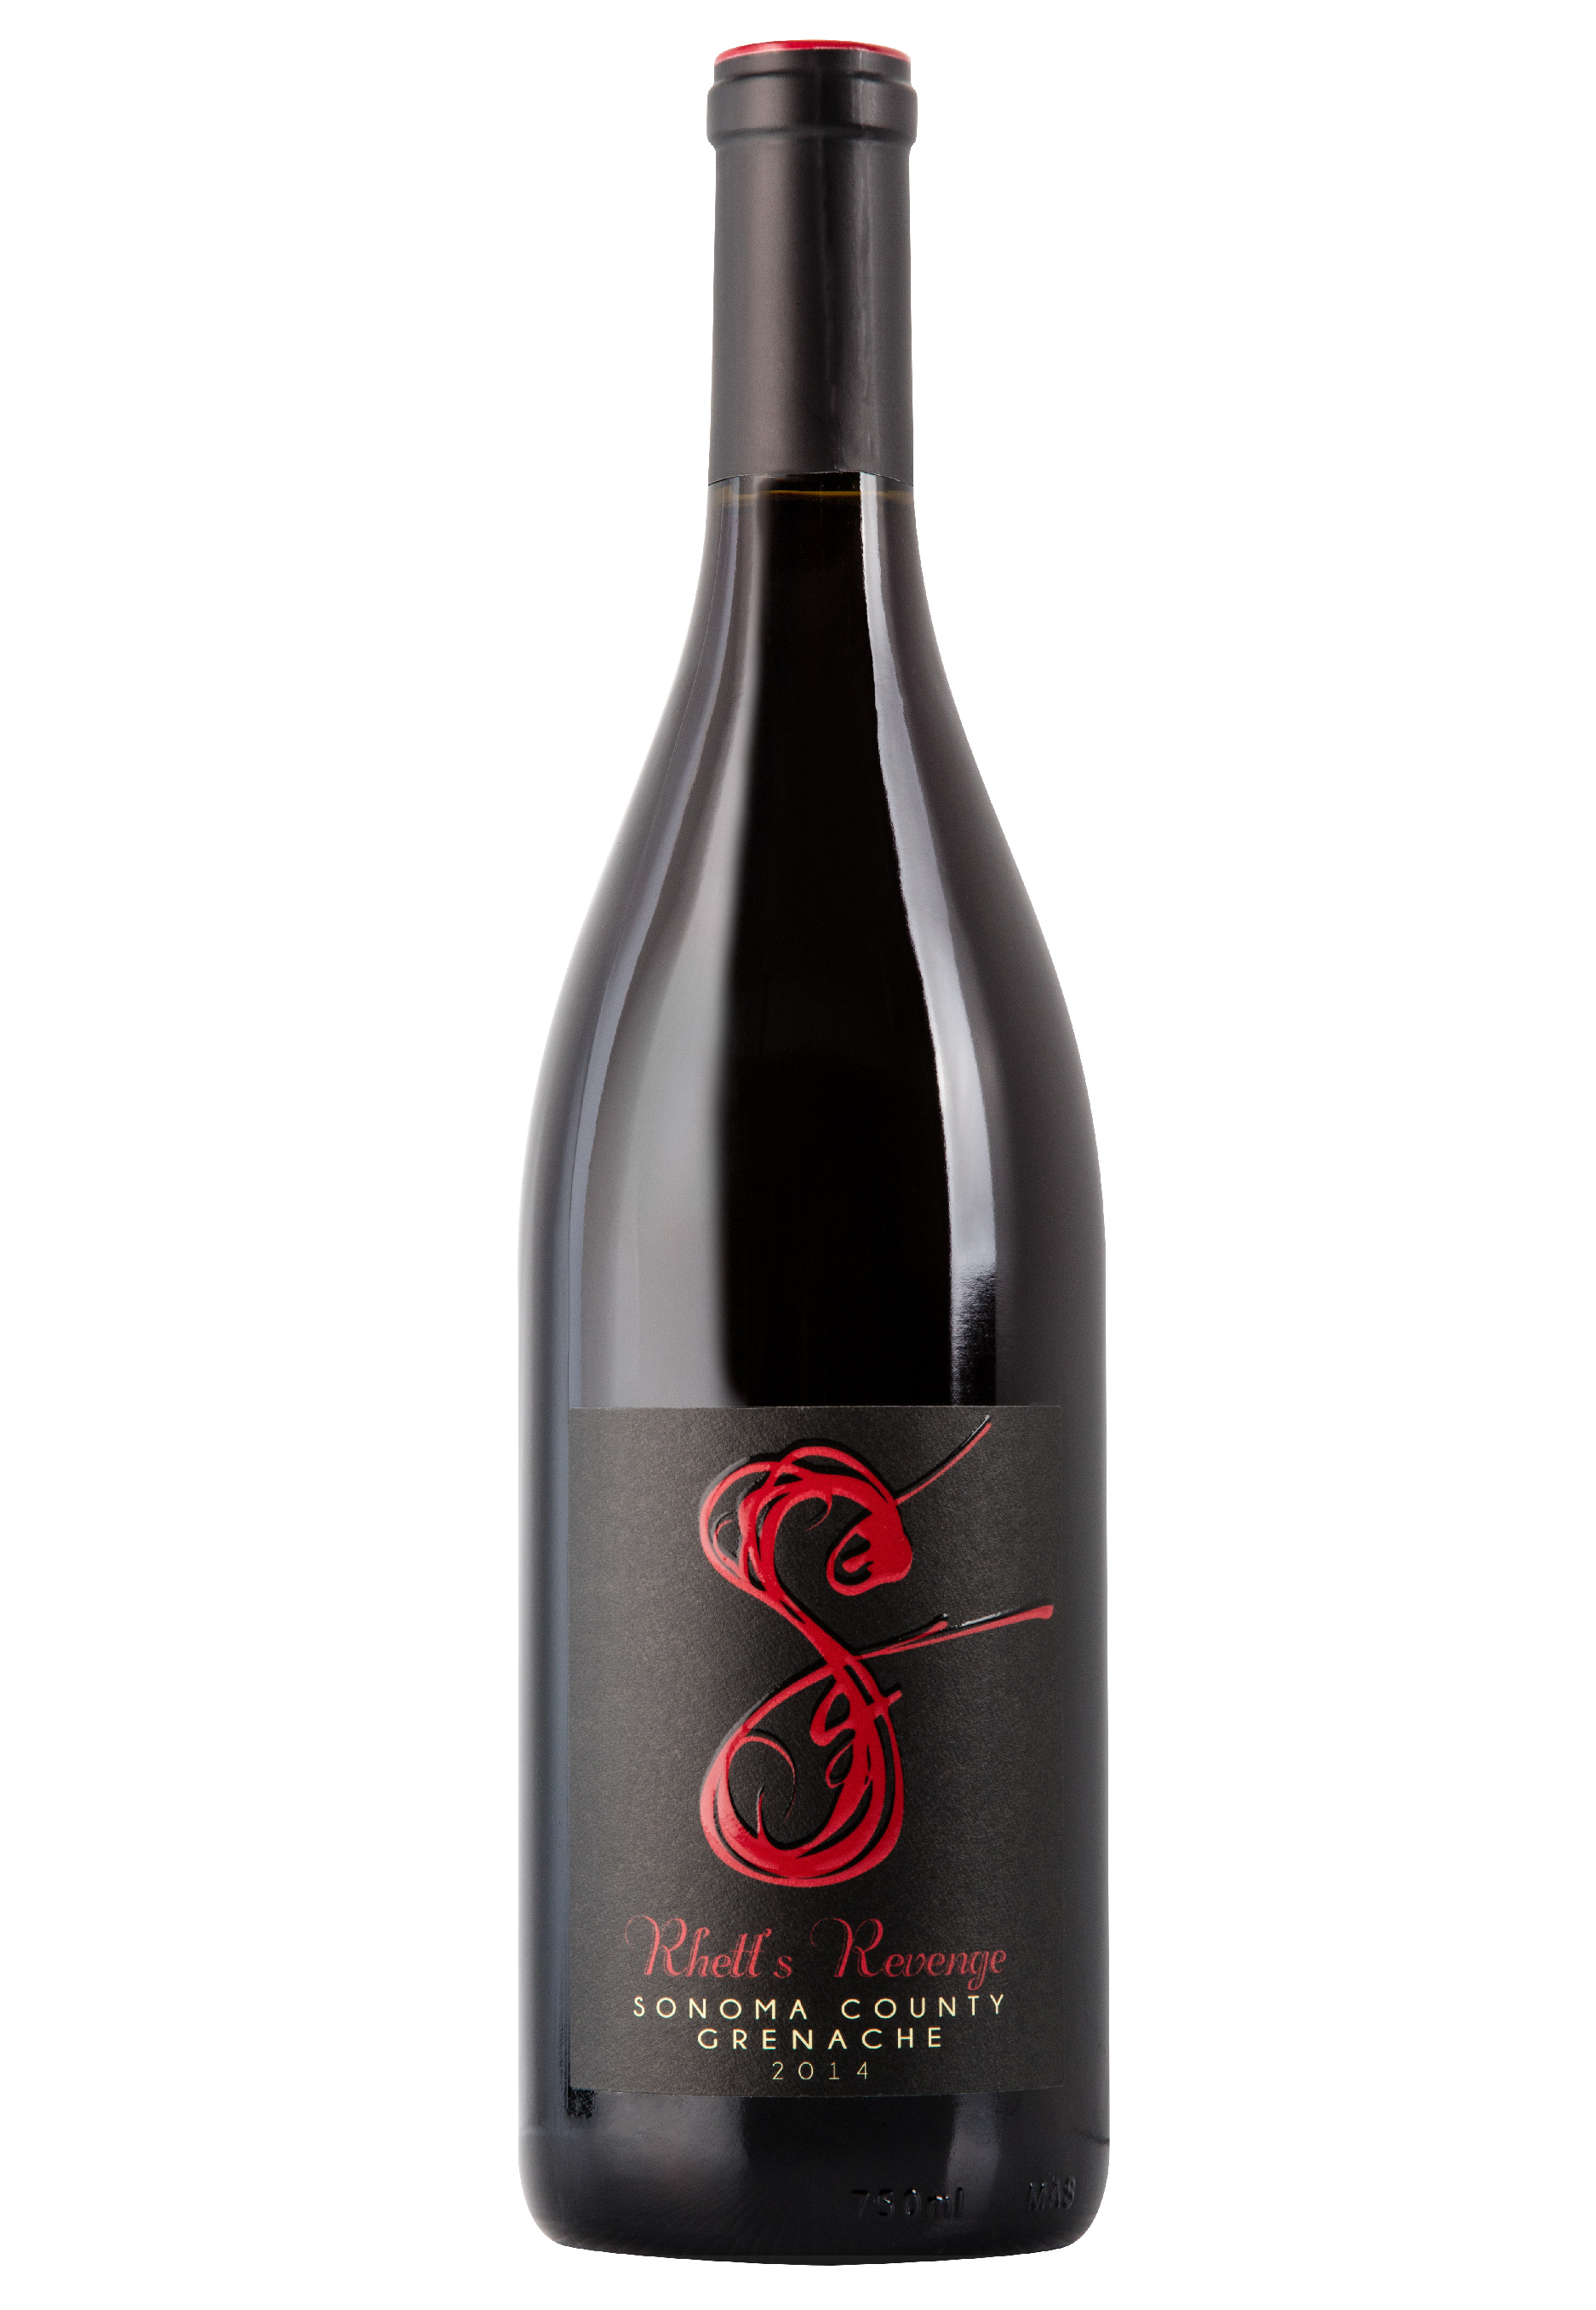 2014 Rhett's Revenge Grenache Sonoma County (SOLD OUT)